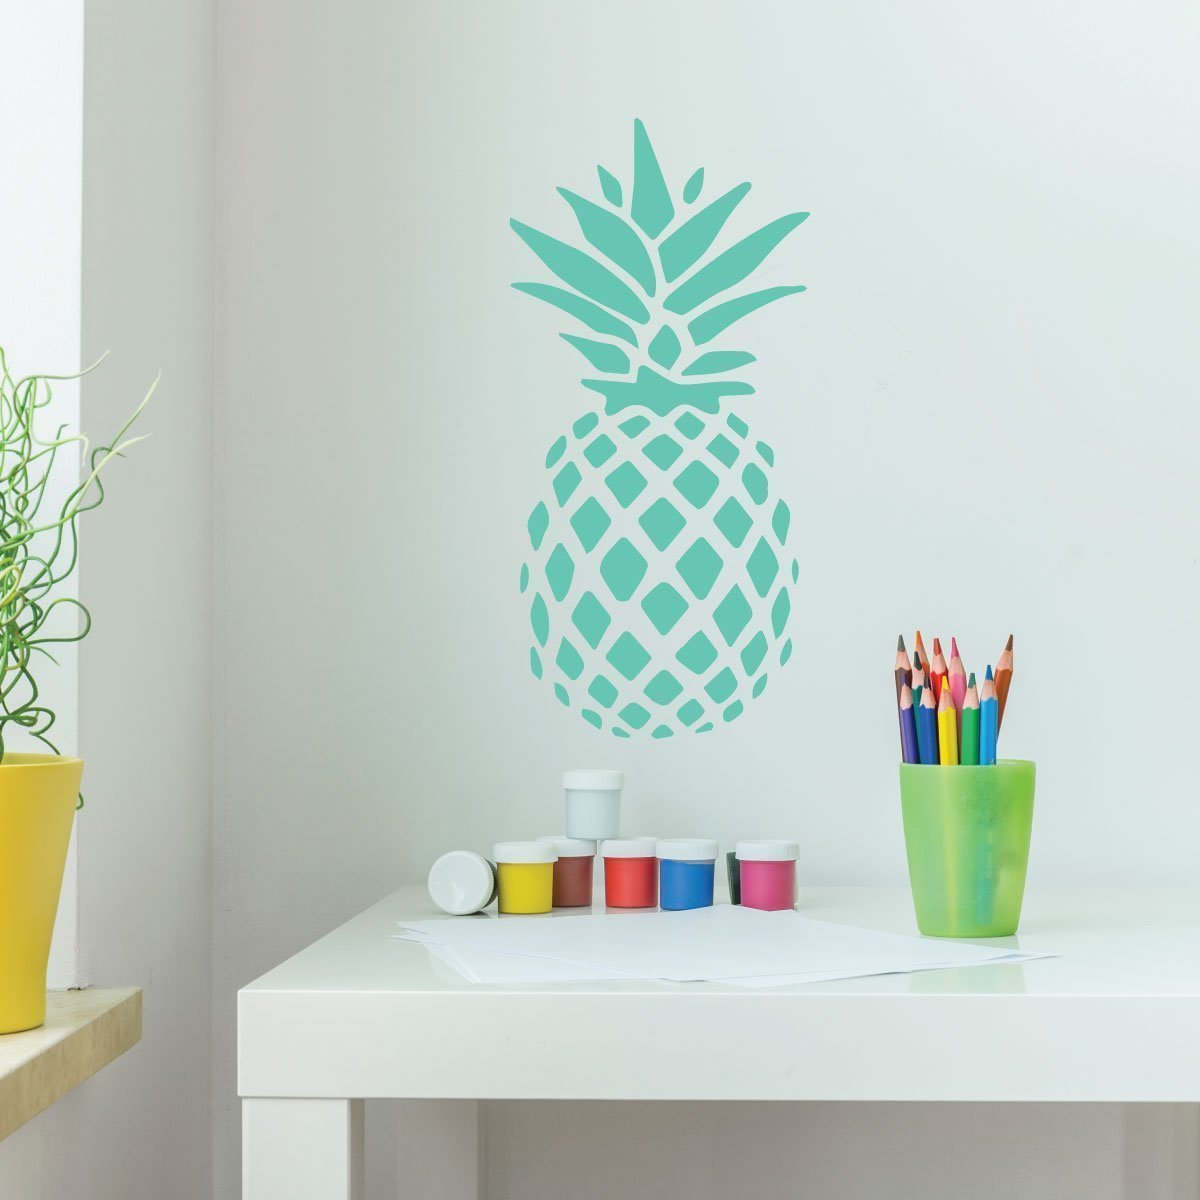 Amazon.com: Pineapple Decor - Vinyl Wall Decal With Hawaiian ...